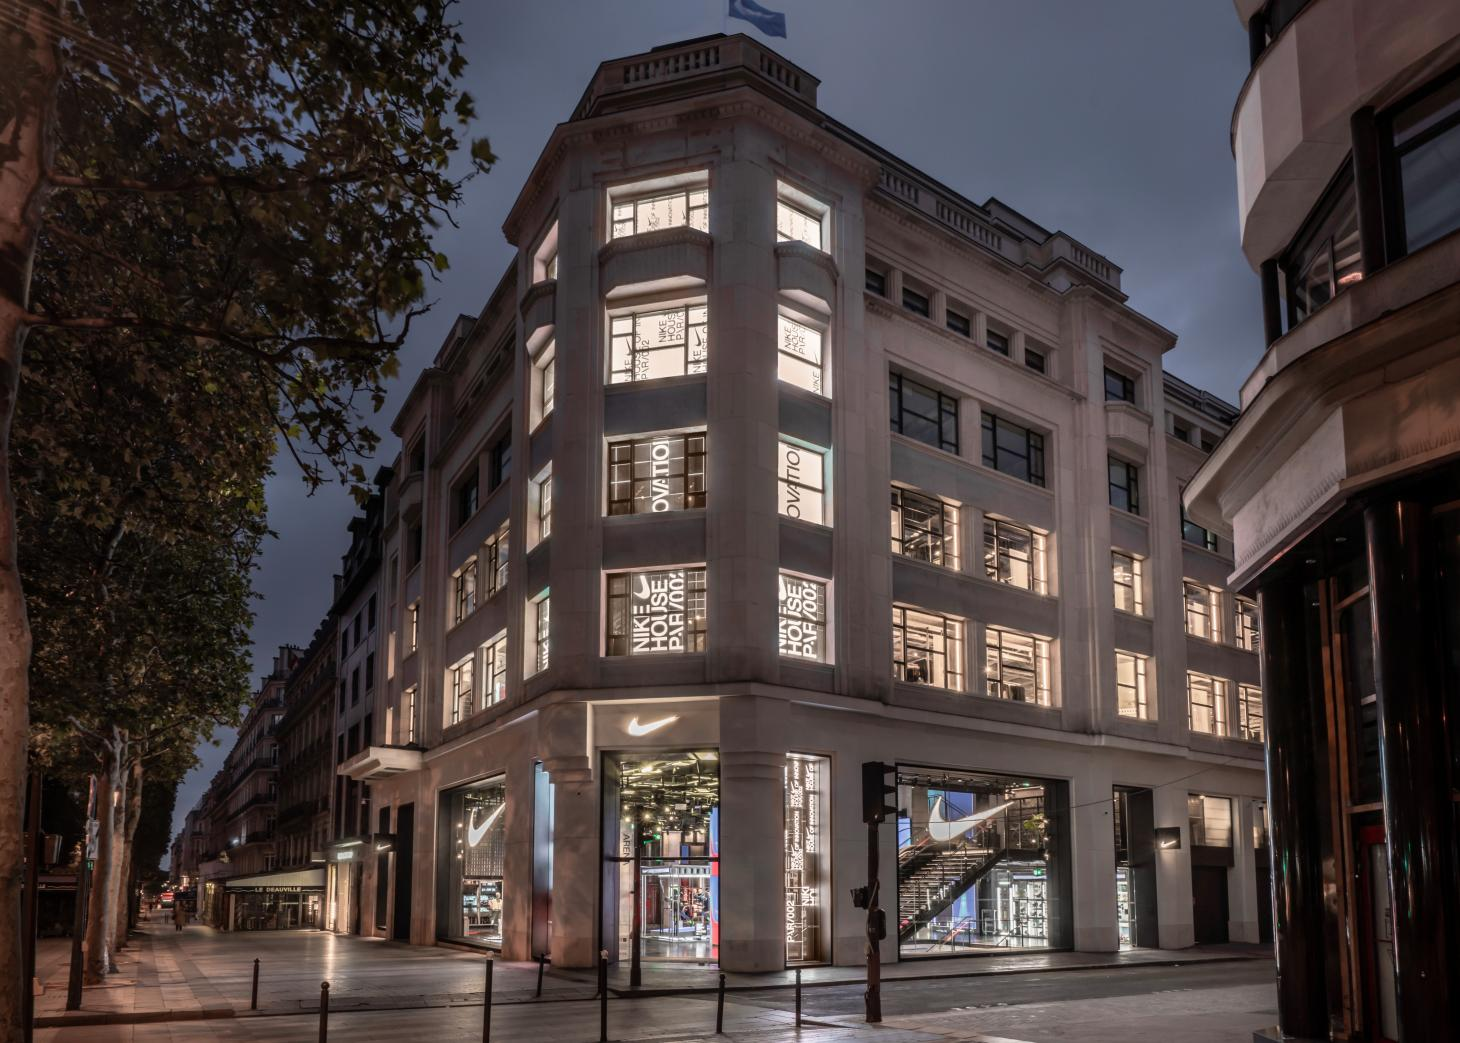 Nike's new Paris flagship external facade view from the street at evening time